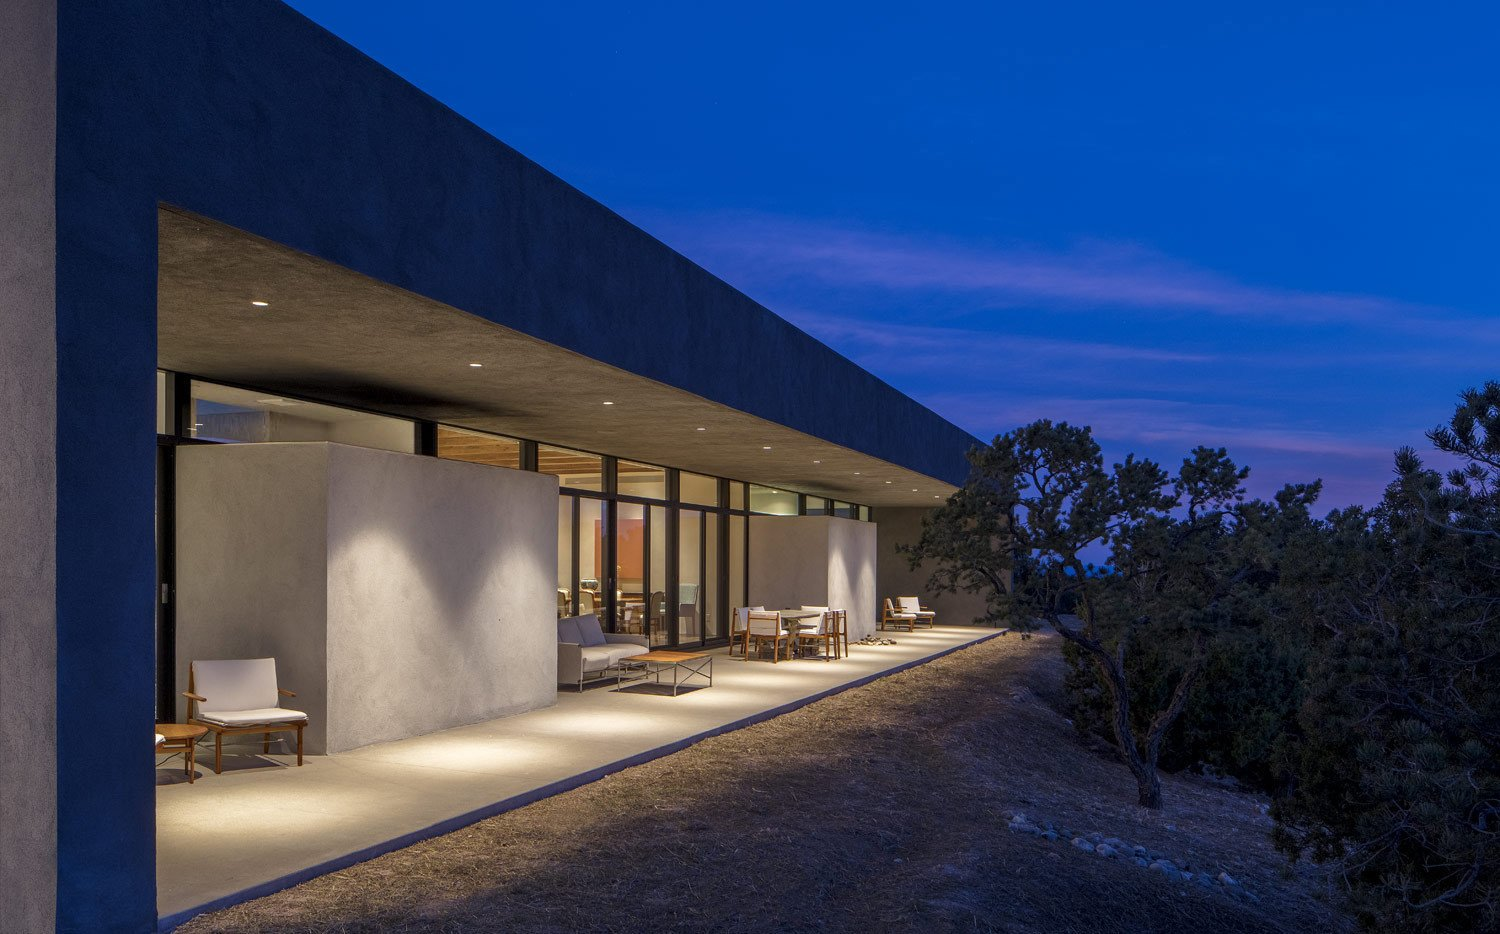 Sundial House, Backyard Exterior.  Sundial House by Specht Architects